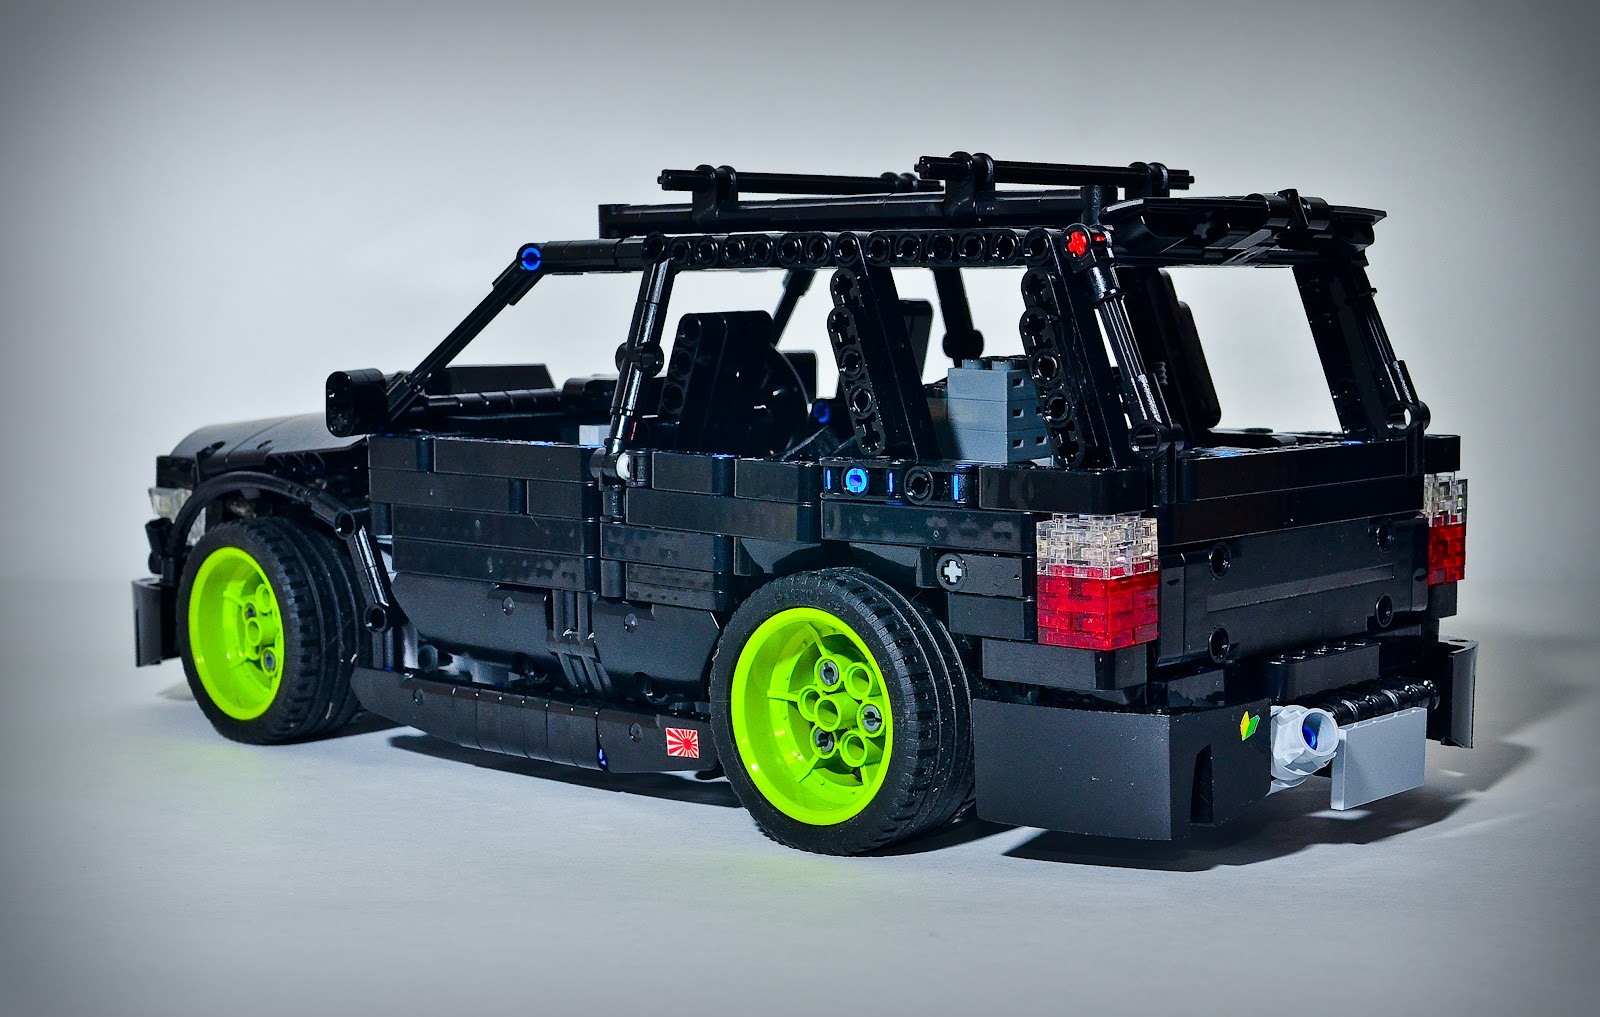 filsawgood Lego Technic Creations  Lego Technic Subaru Forester Lego Technic Subaru Forester